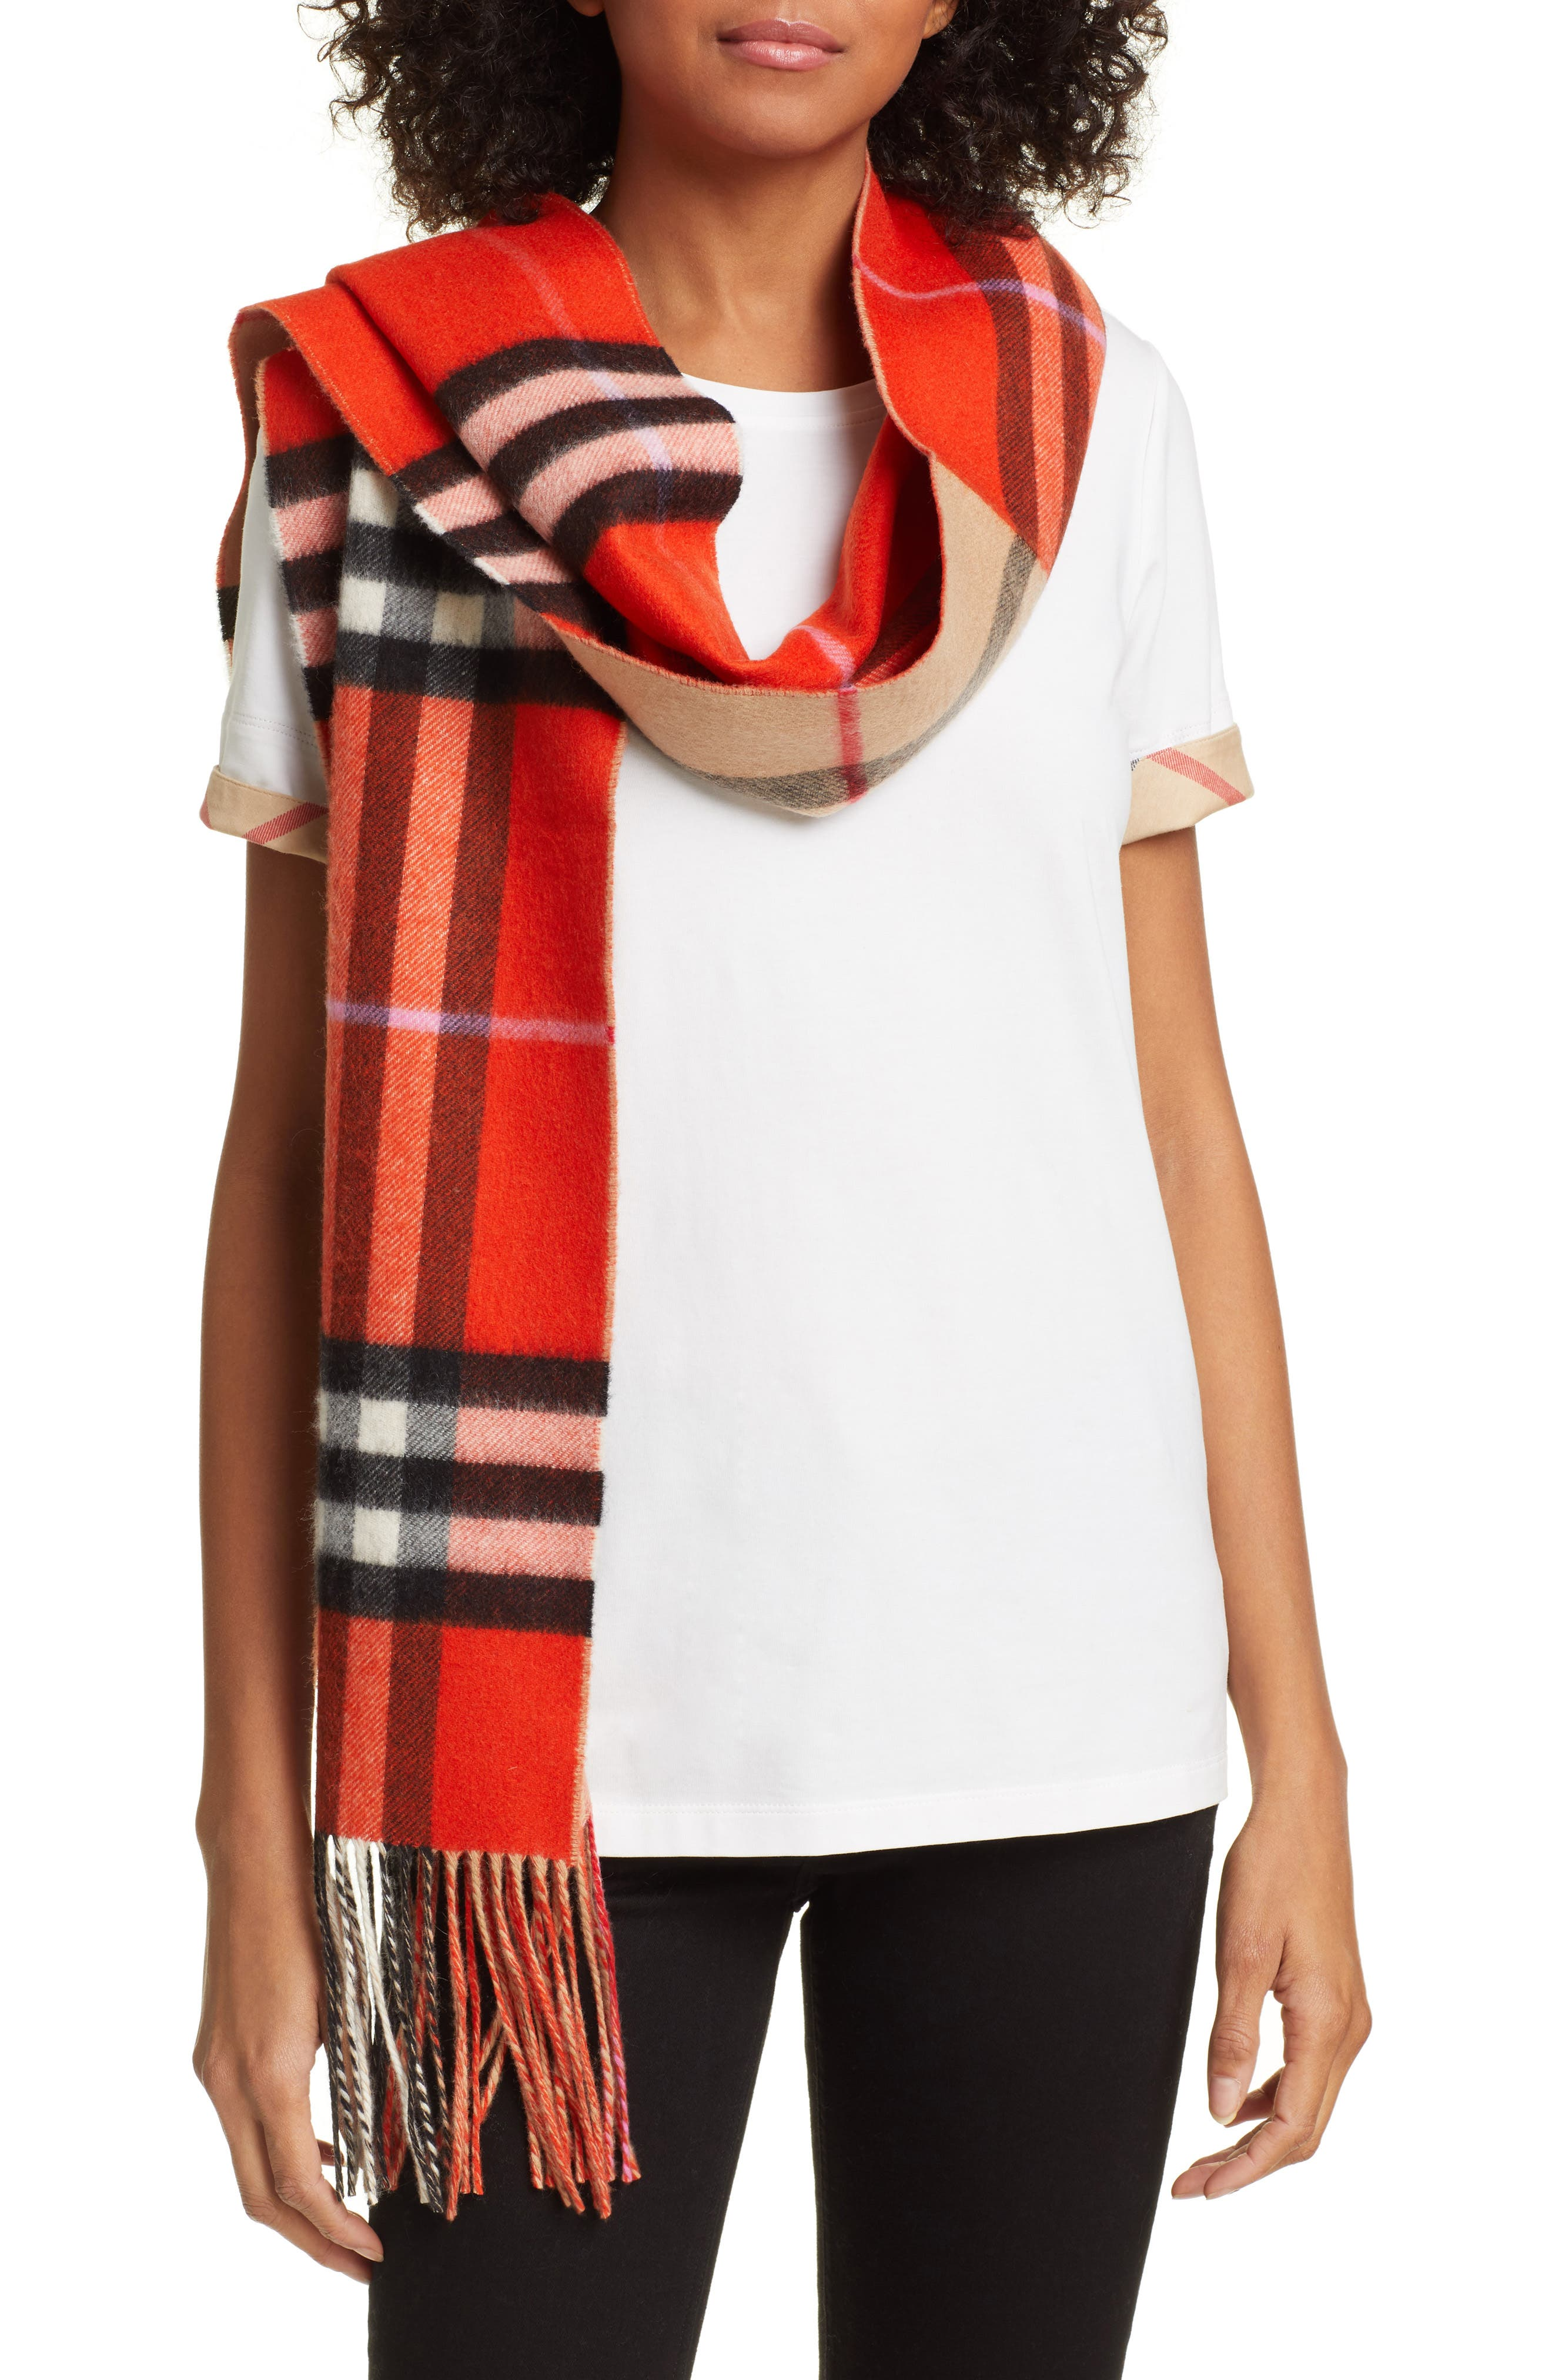 BURBERRY Giant Check to Check Reversible Cashmere Scarf, Main, color, BRIGHT ORANGE RED